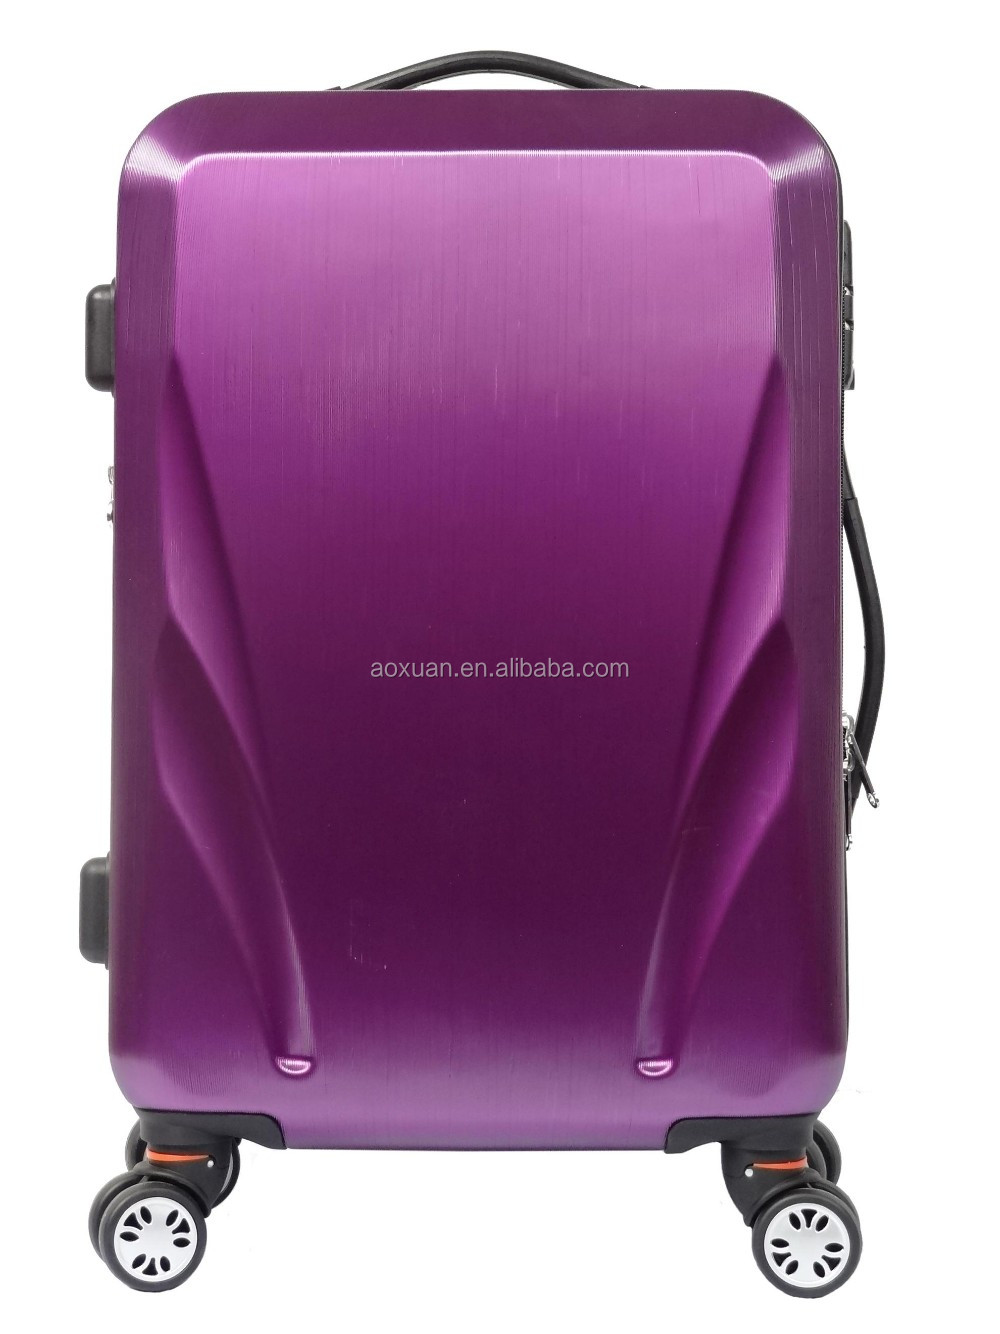 shanghai luggage bag ABS PC trolley luggage bag